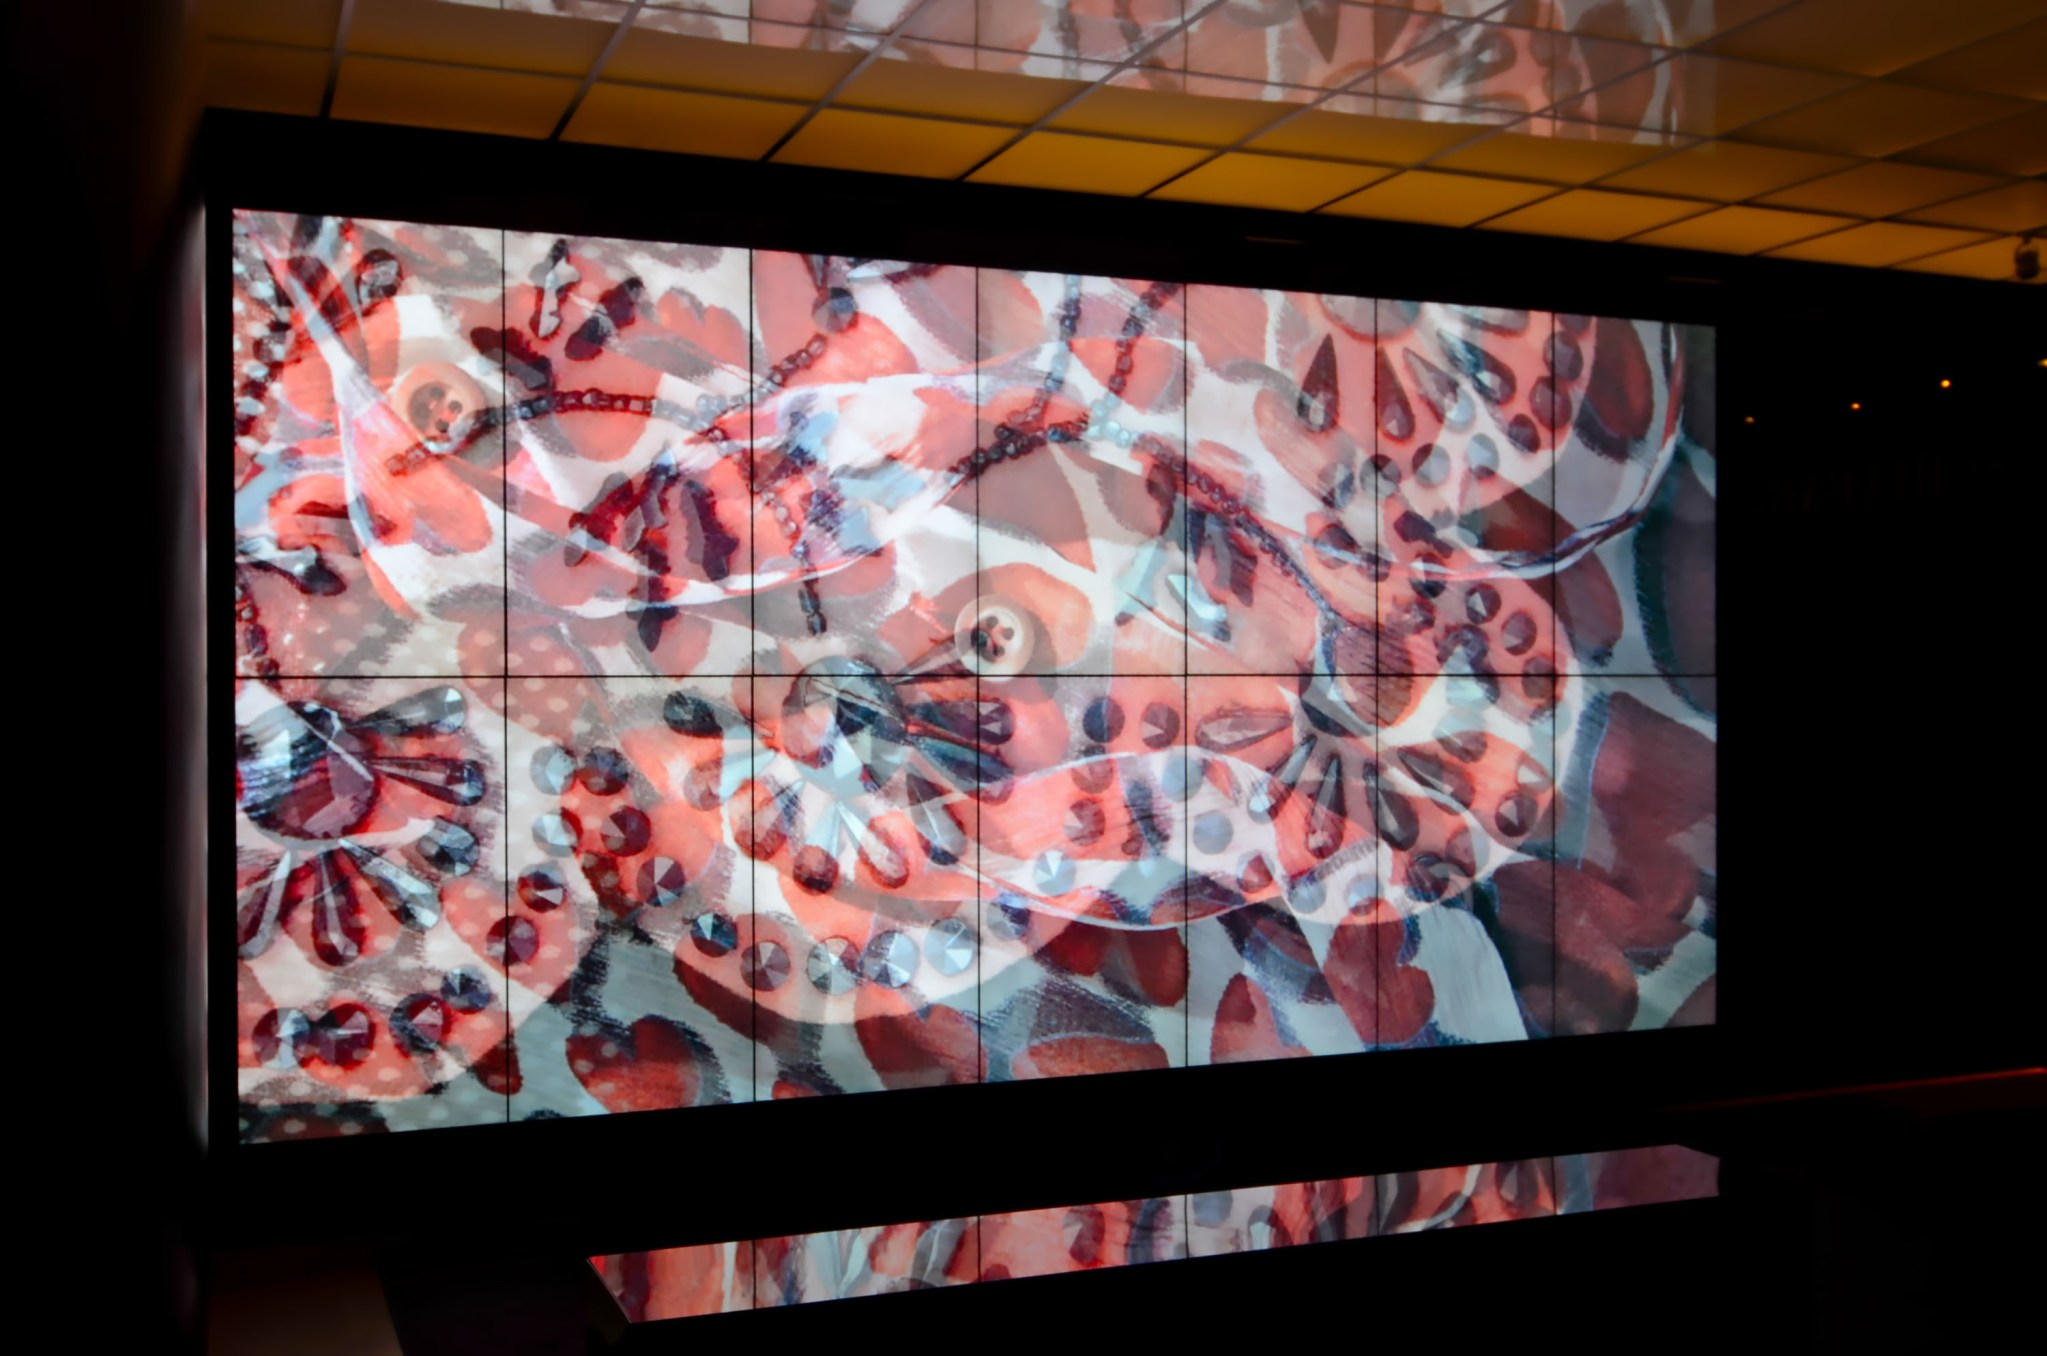 Prada-Schiaparelli Met Museum video wall